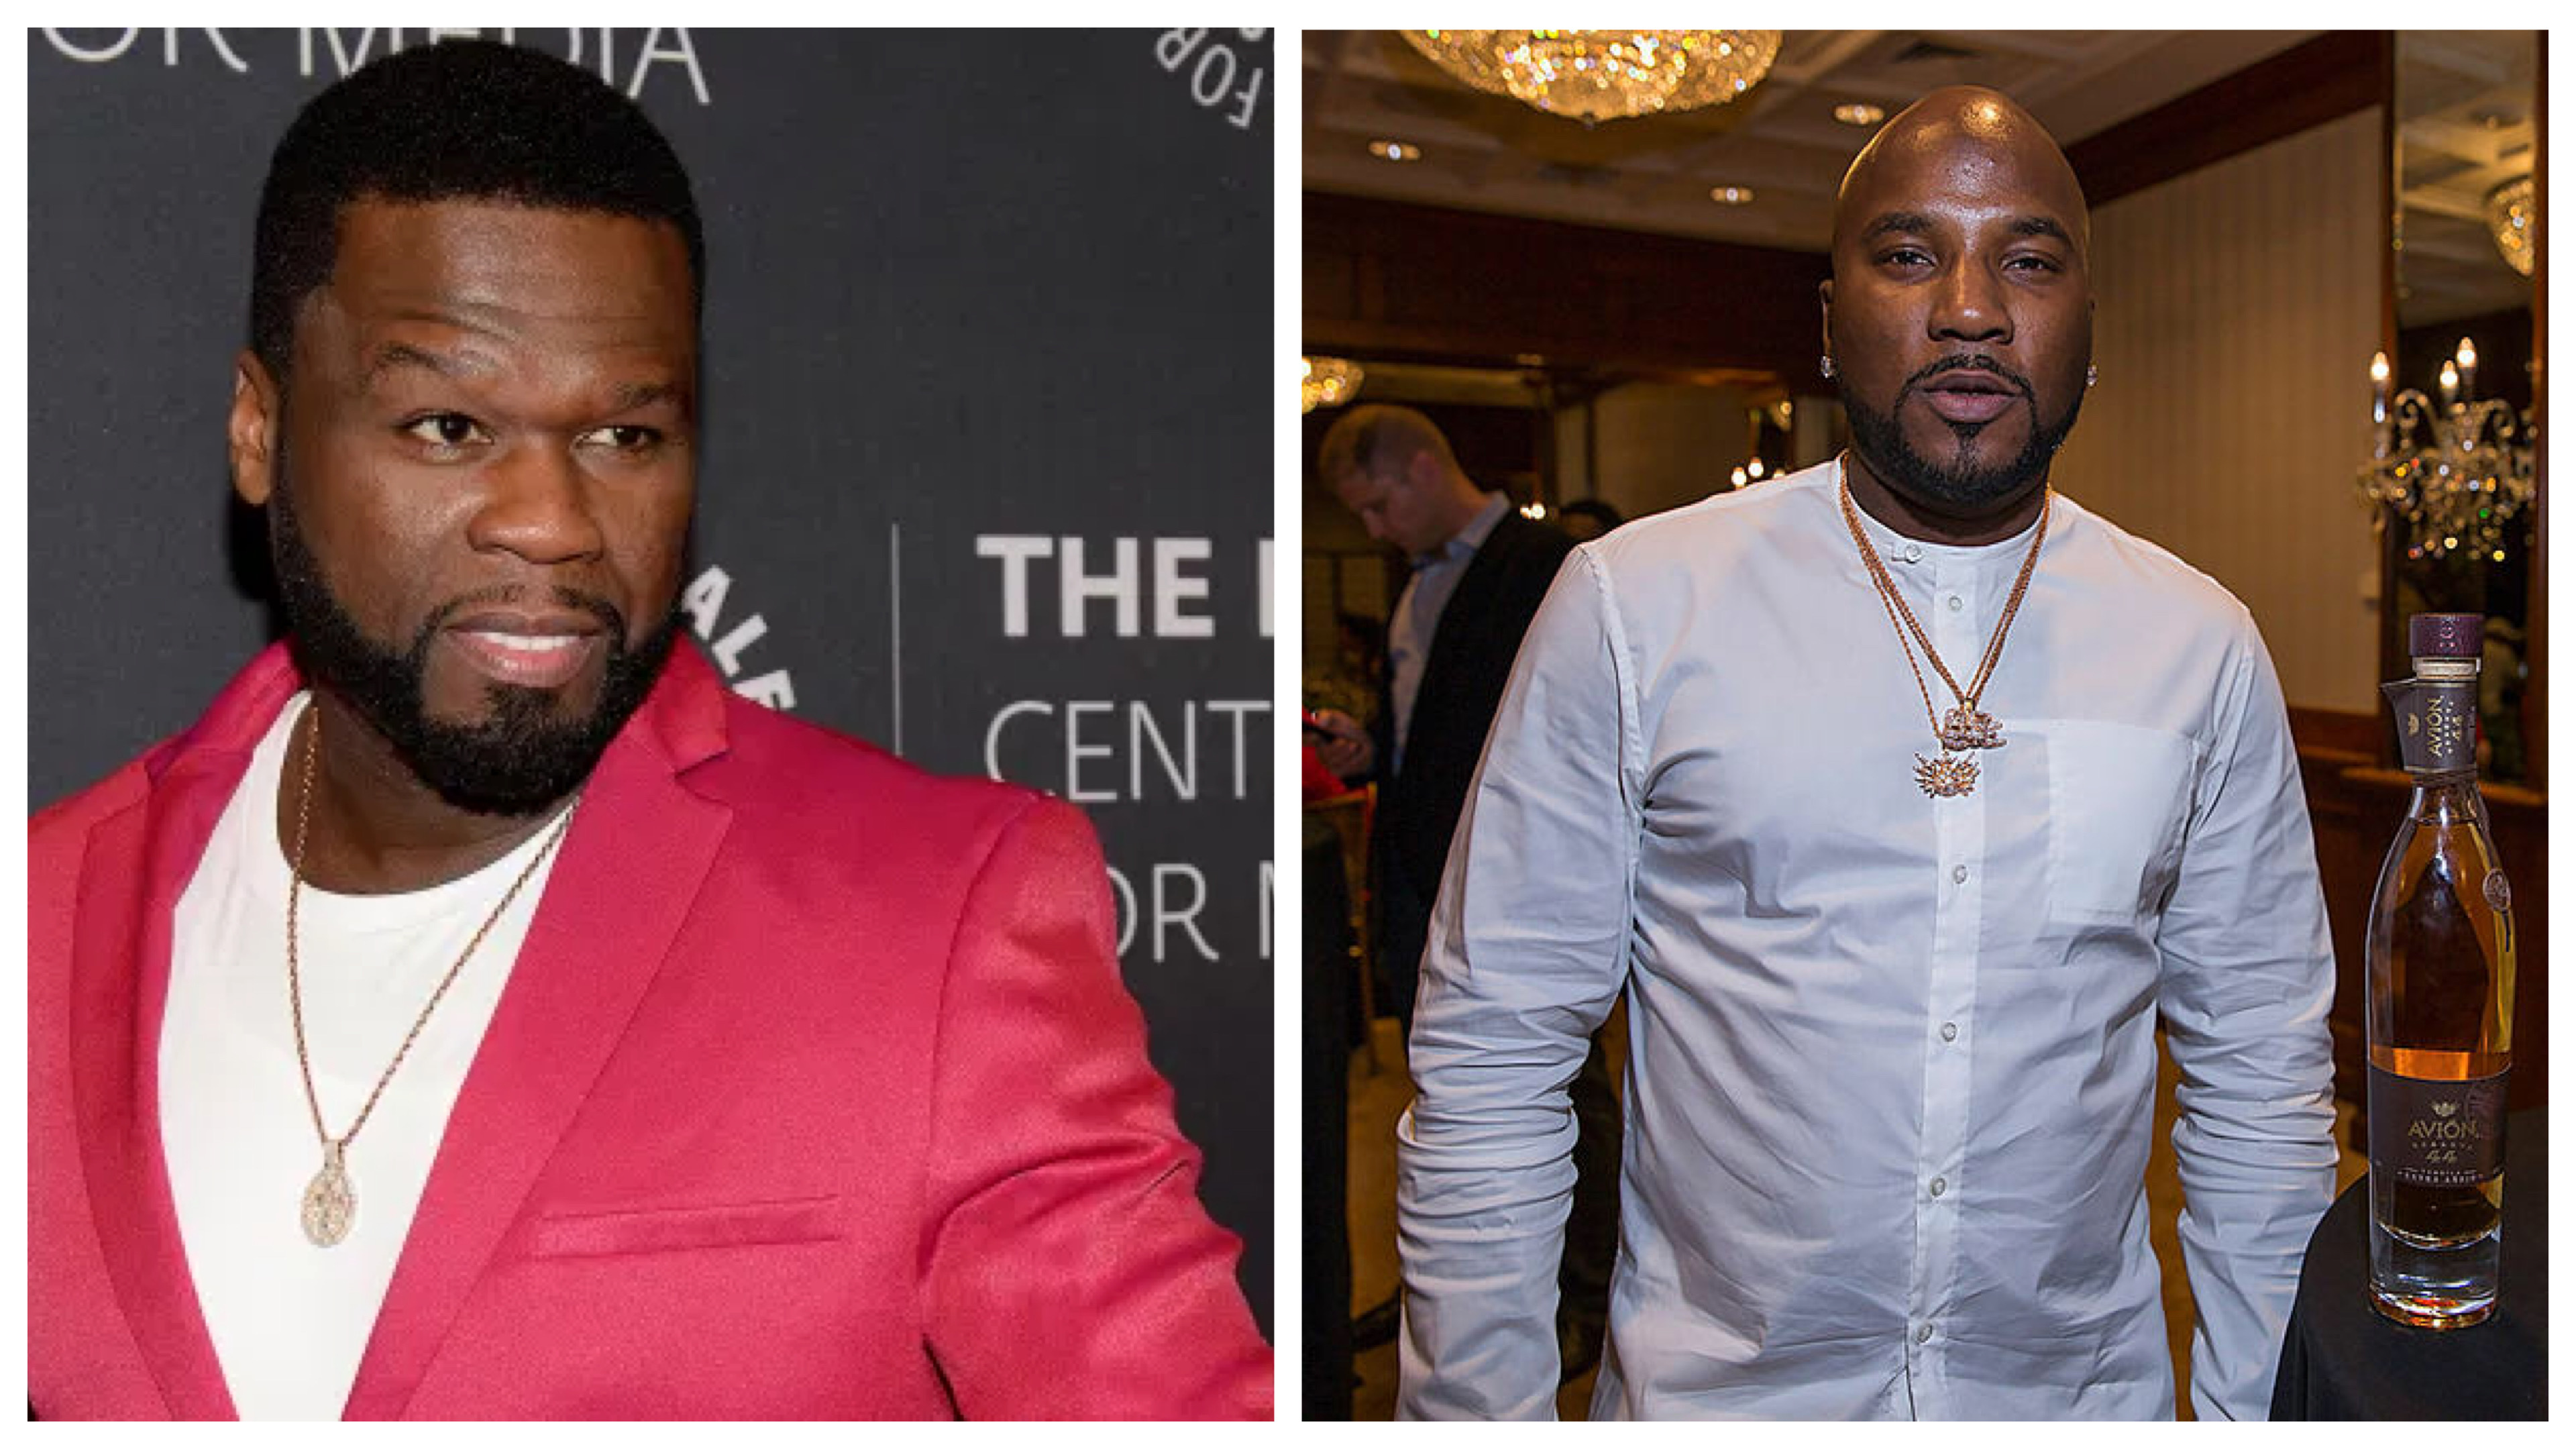 50 Cent and Jeezy